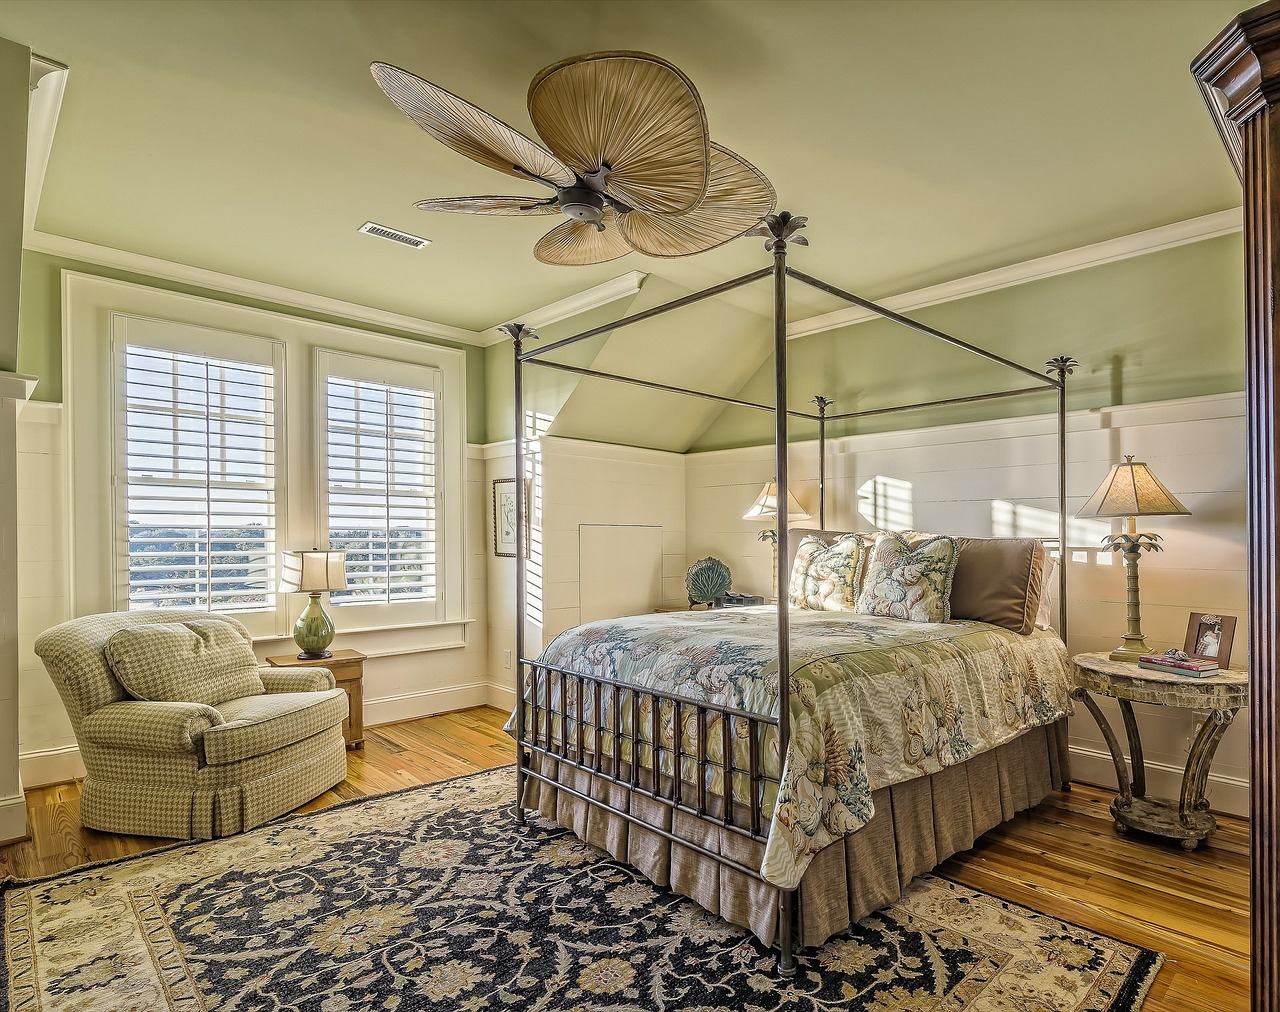 Décor Tricks for a Beautiful Bedroom